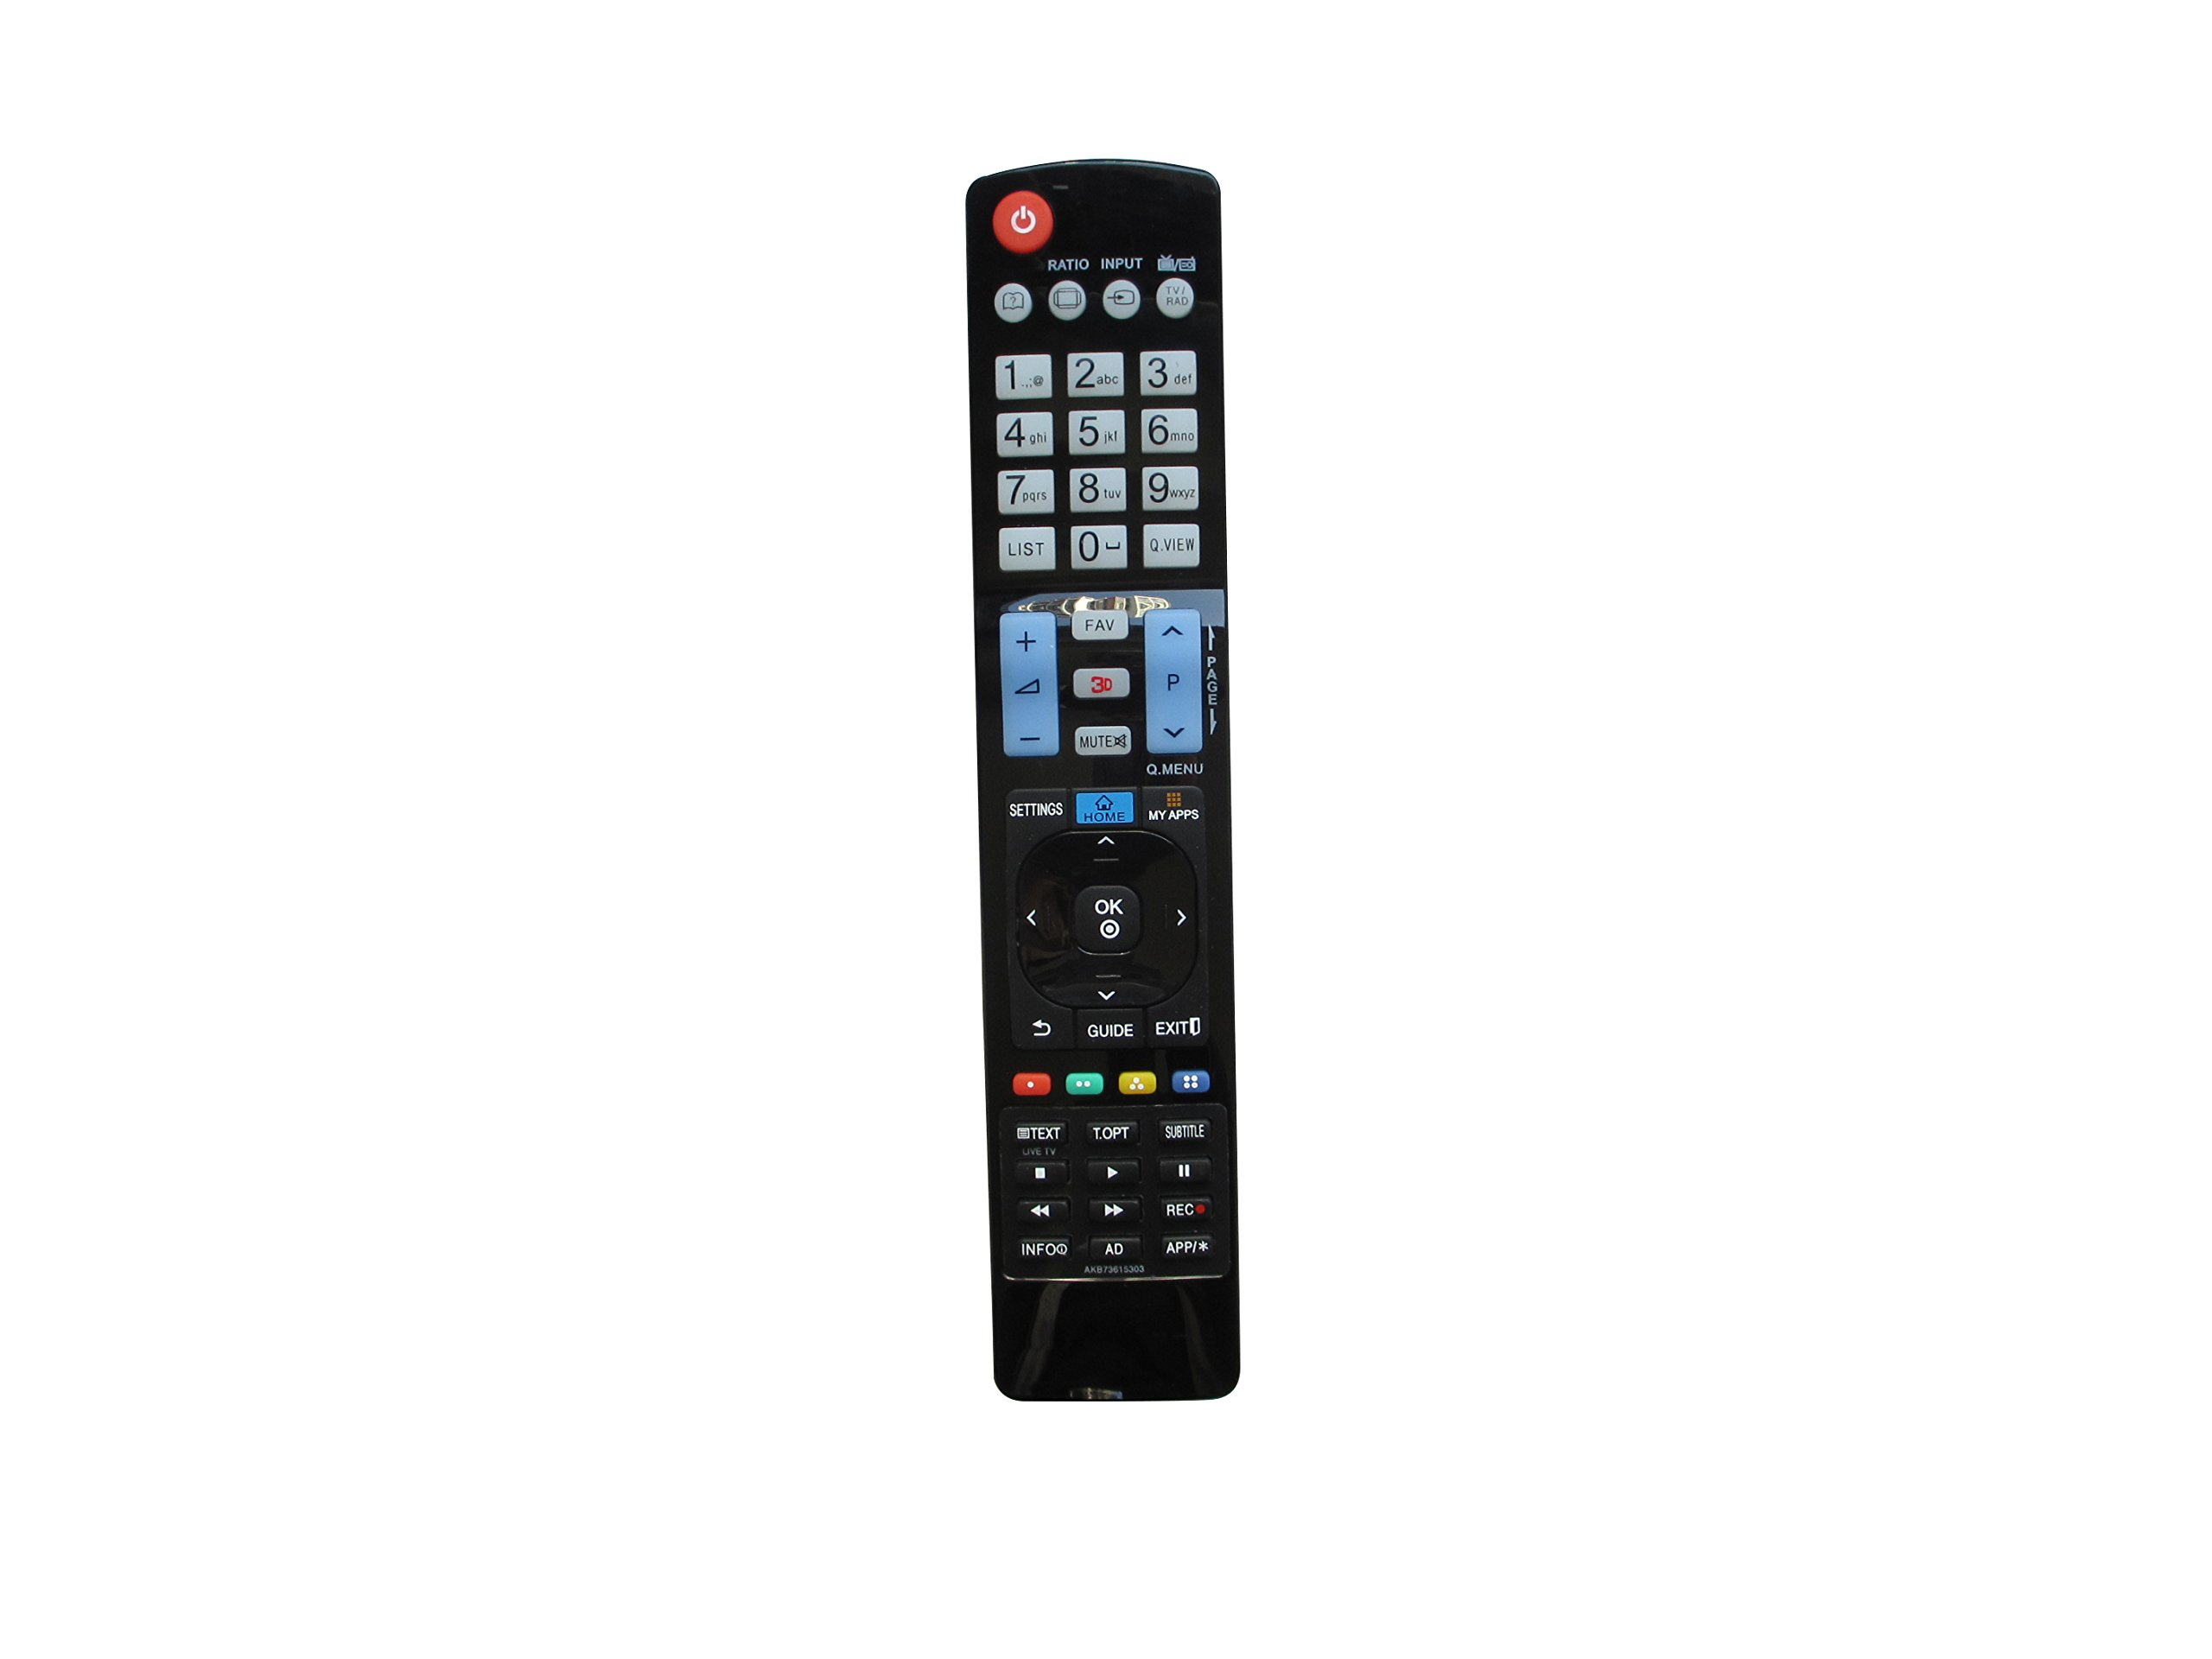 Replacement Remote Control Fit For LG 55LW9500 19LS3500 60LW7700 65LW7700 32LG700H-UA 42LG500H-UB 32LX50C 42LH30-UA 60PK950-UA 50PK550-UD 22LH25R 60PK750-UA 50PK950-UA Smart 3D Plasma LCD LED HDTV TV by HCDZ